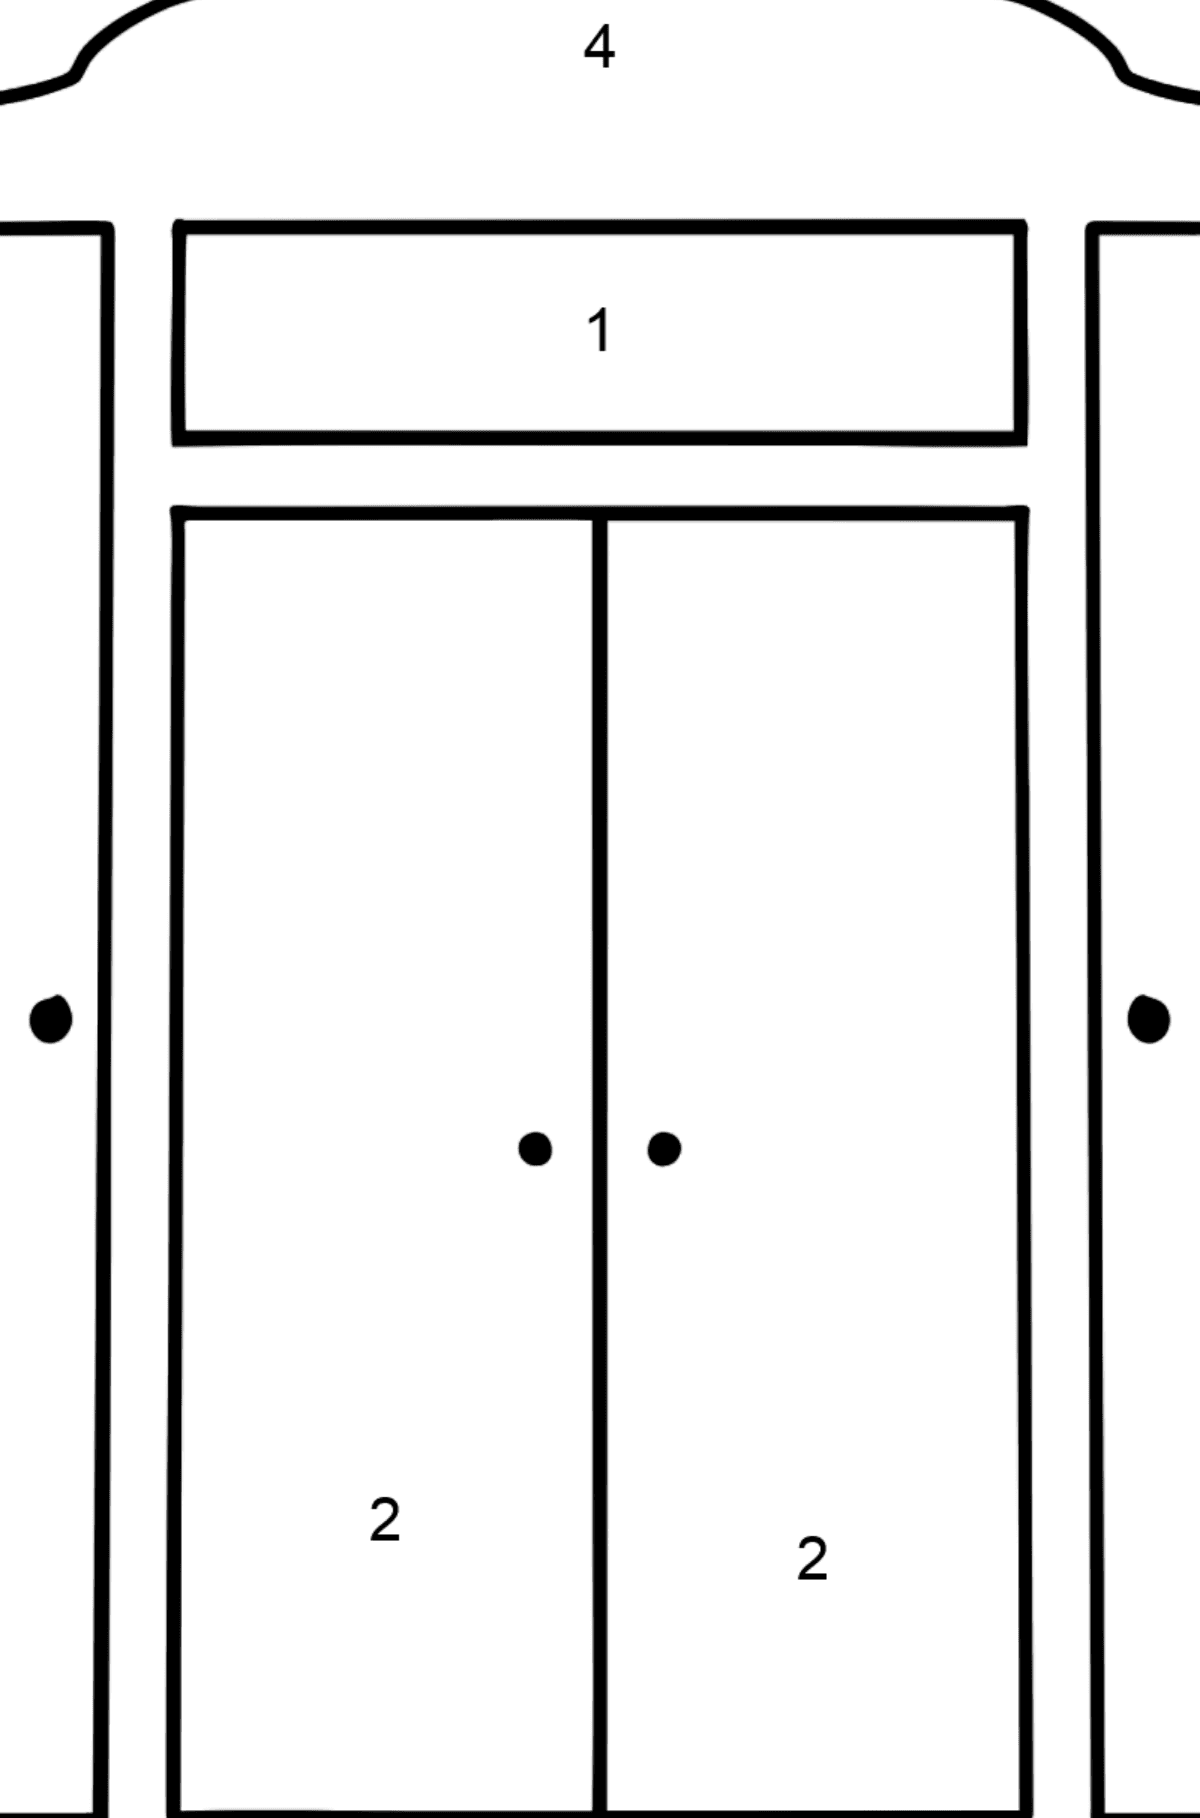 Wardrobe coloring page - Coloring by Numbers for Kids